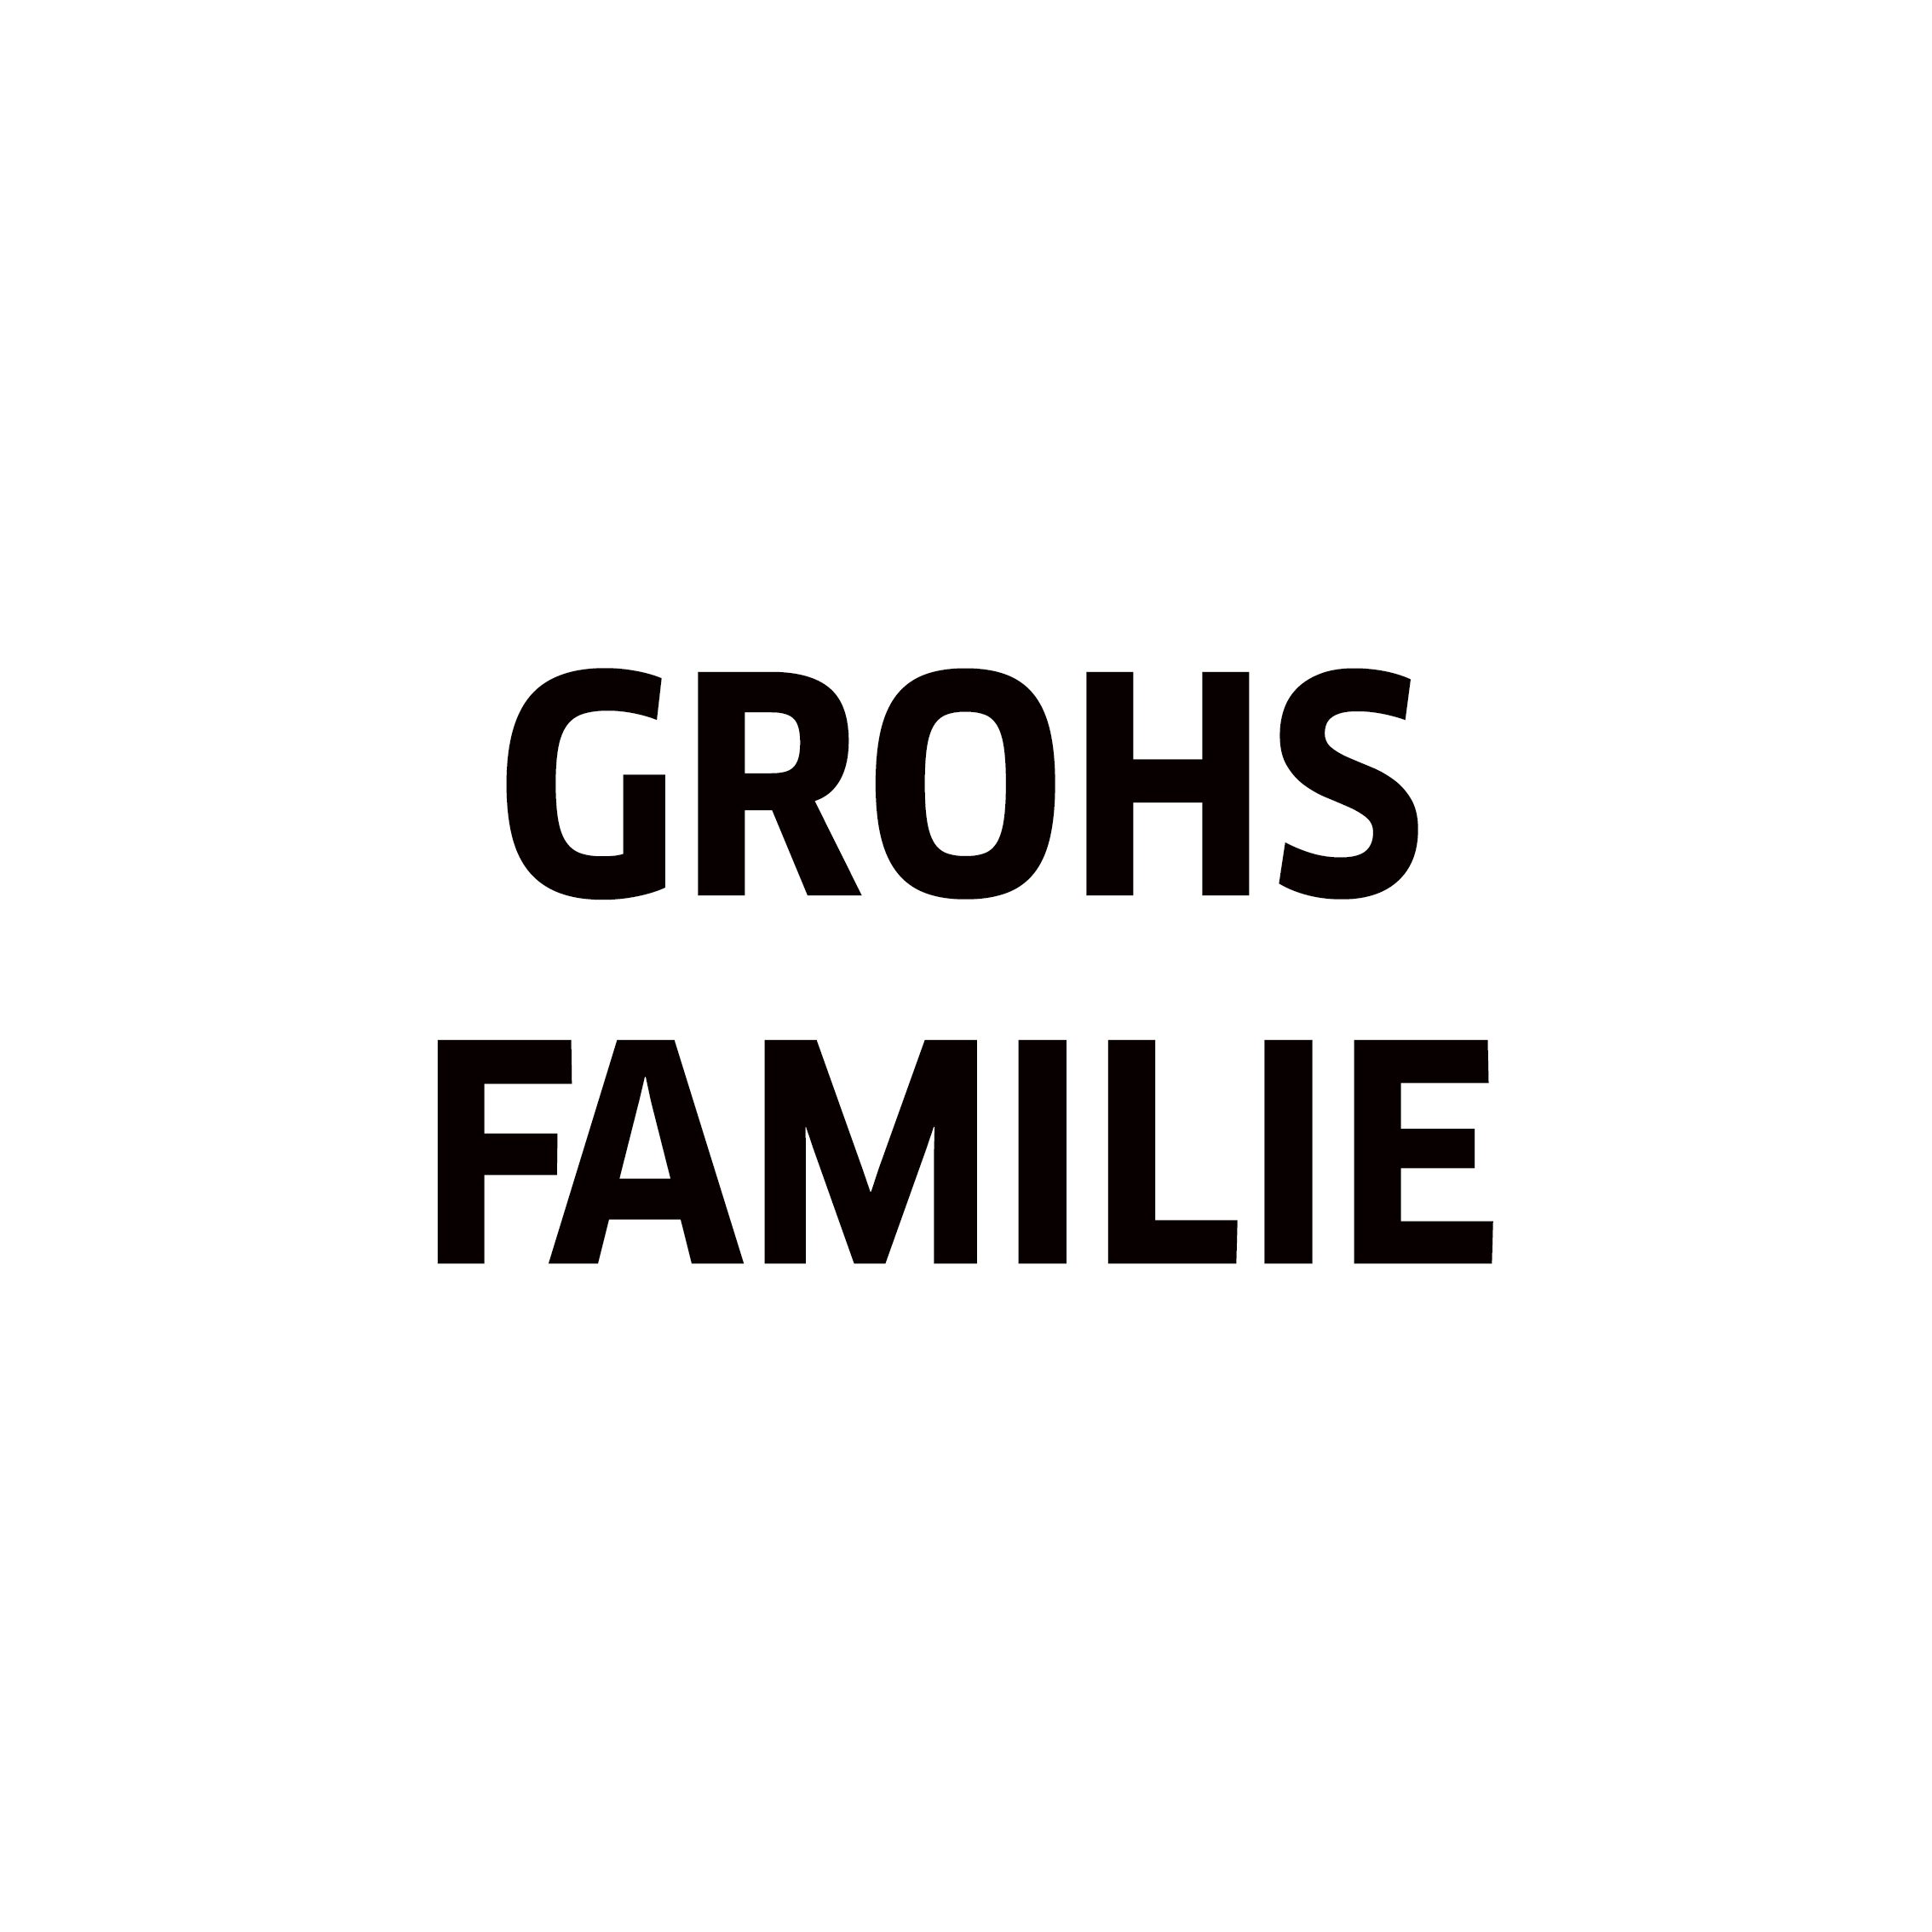 Grohs Familie